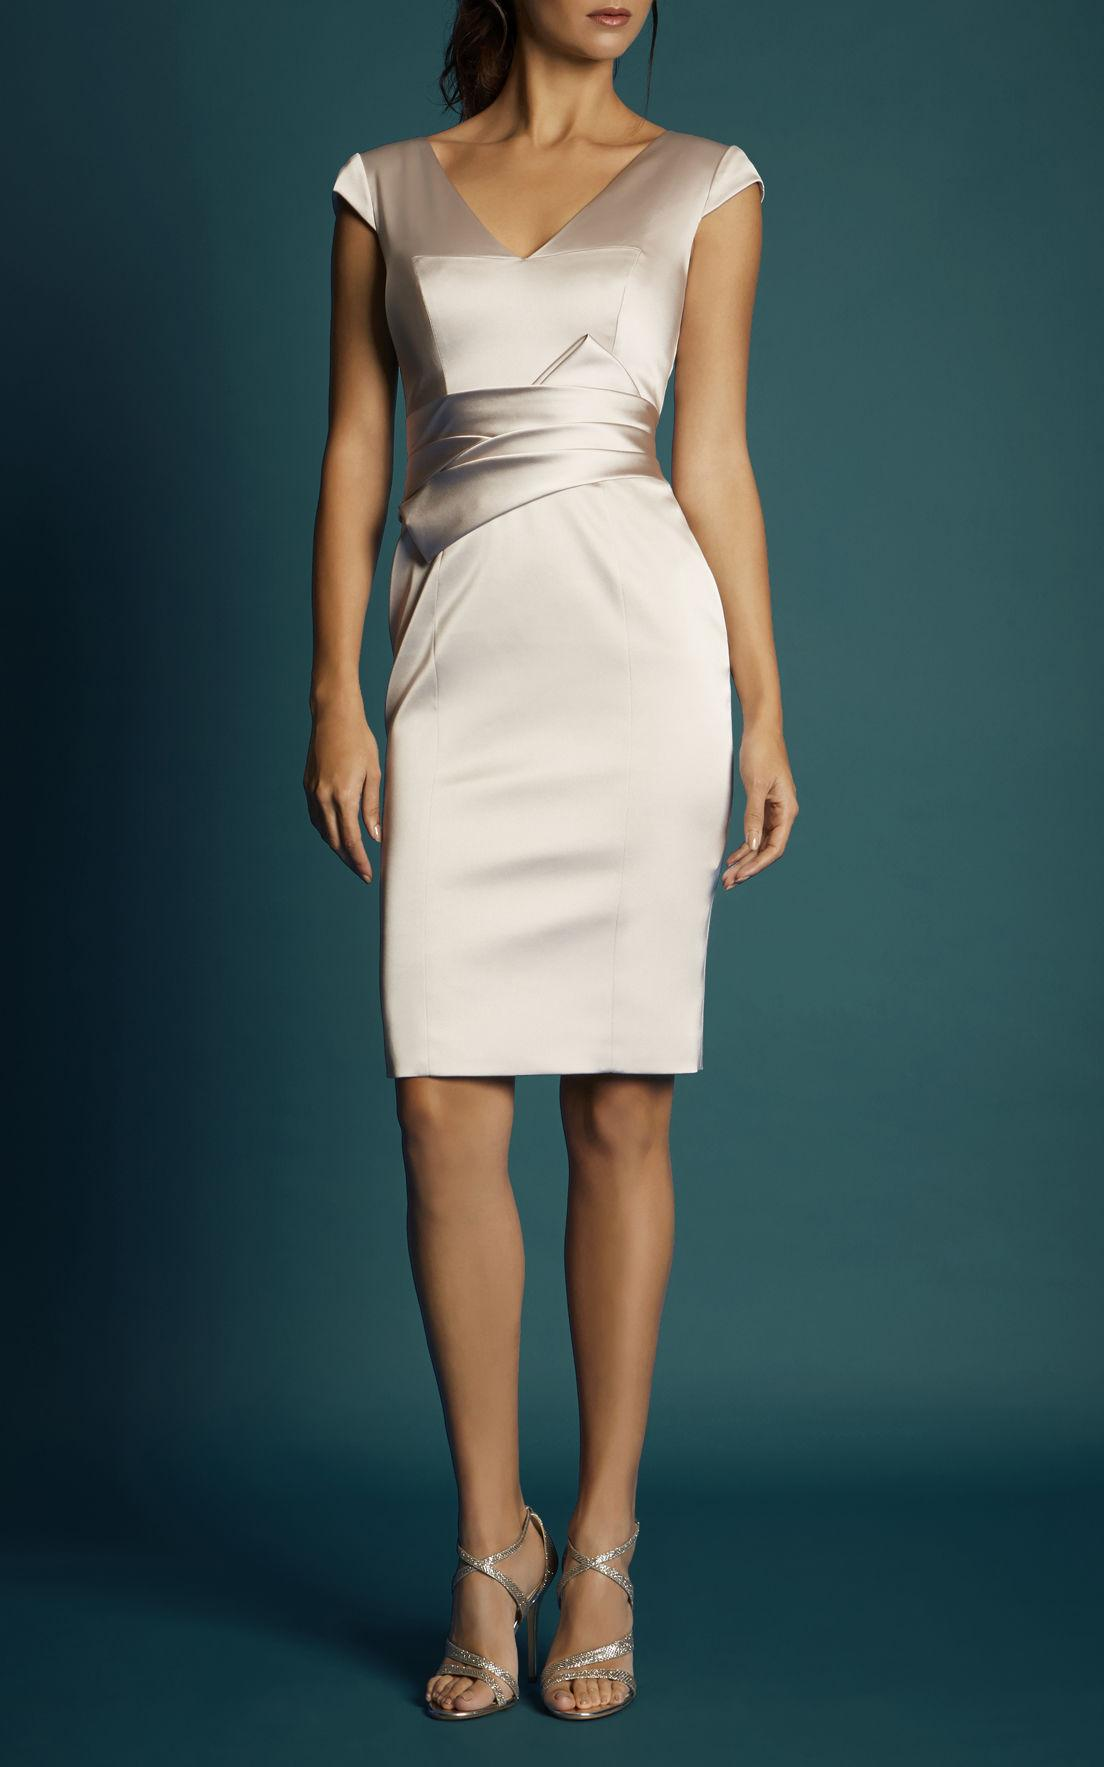 Lyst Karen Millen Pearl Satin Dress Champagne